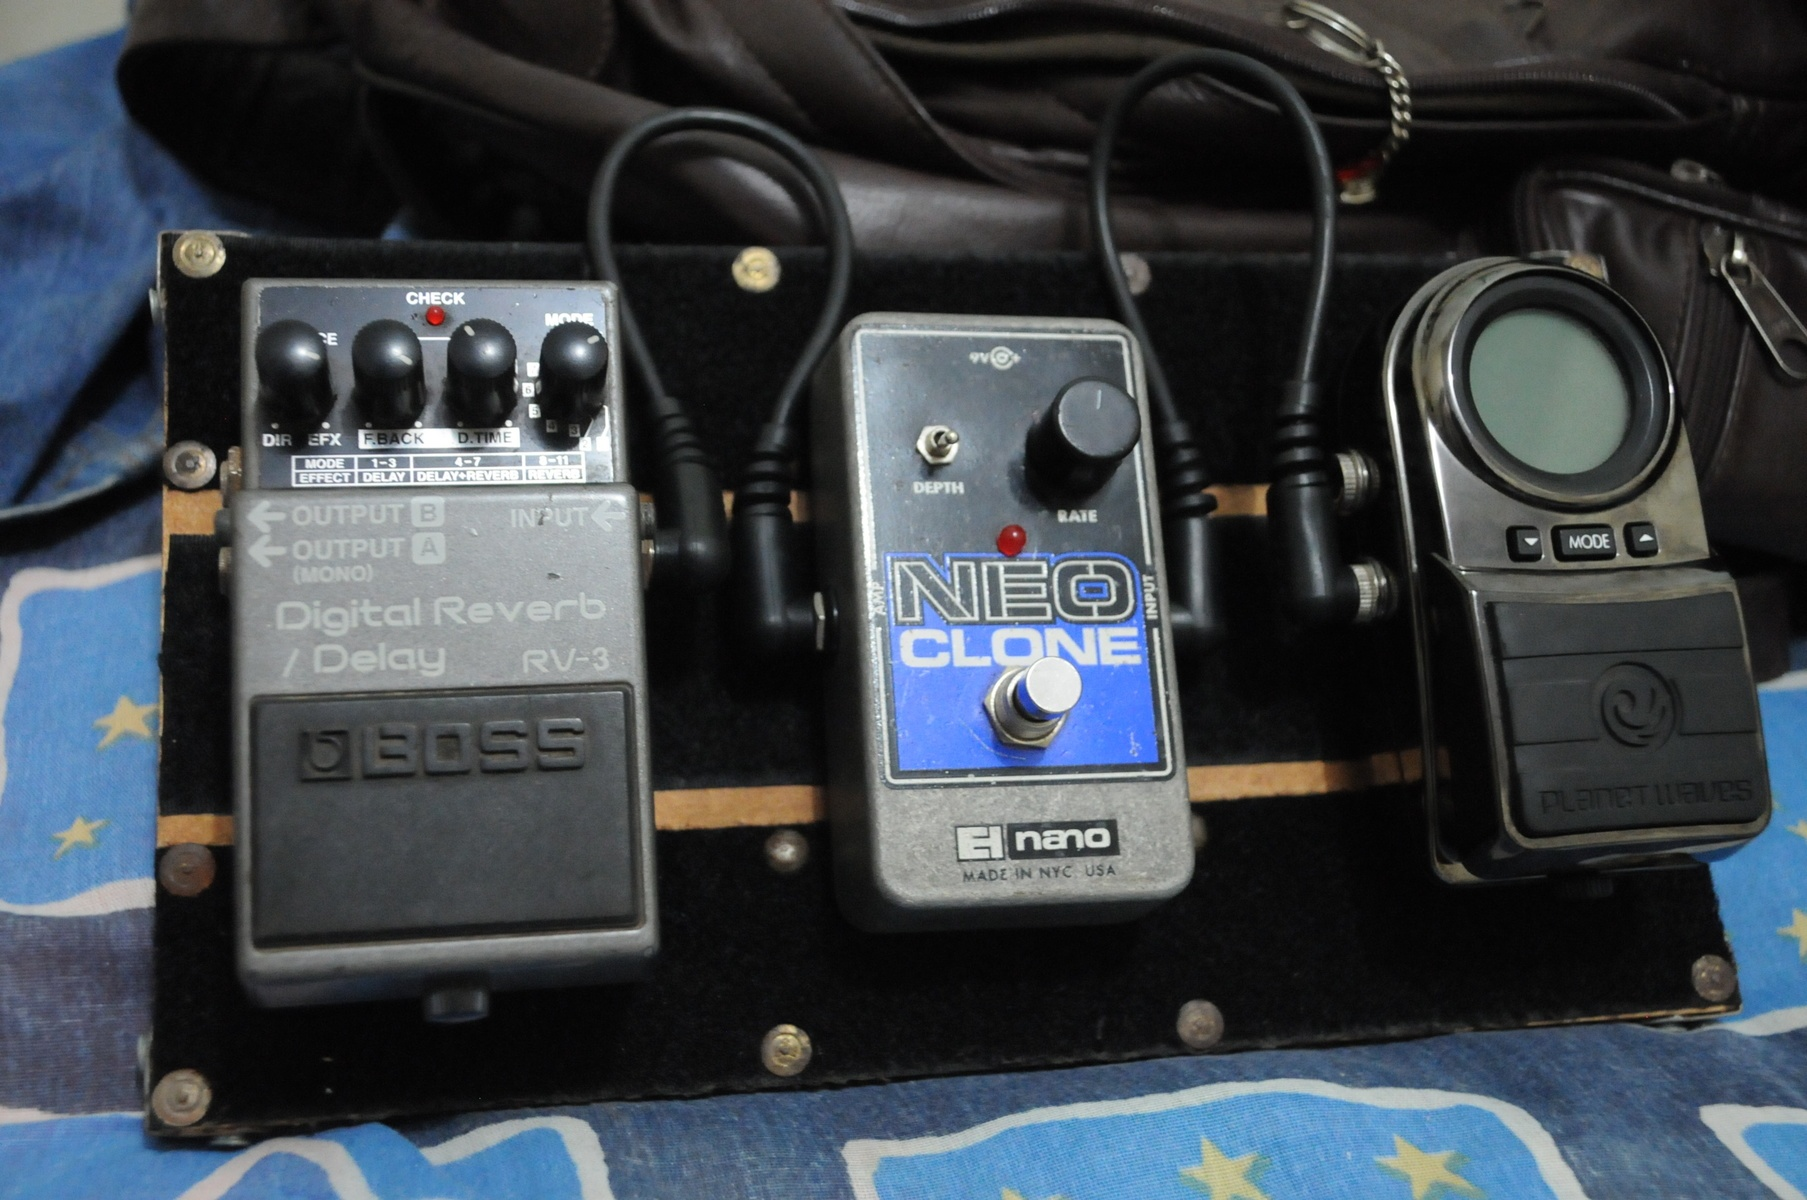 Photo of Boss RV-3 Digital Reverb/Delay and more gear